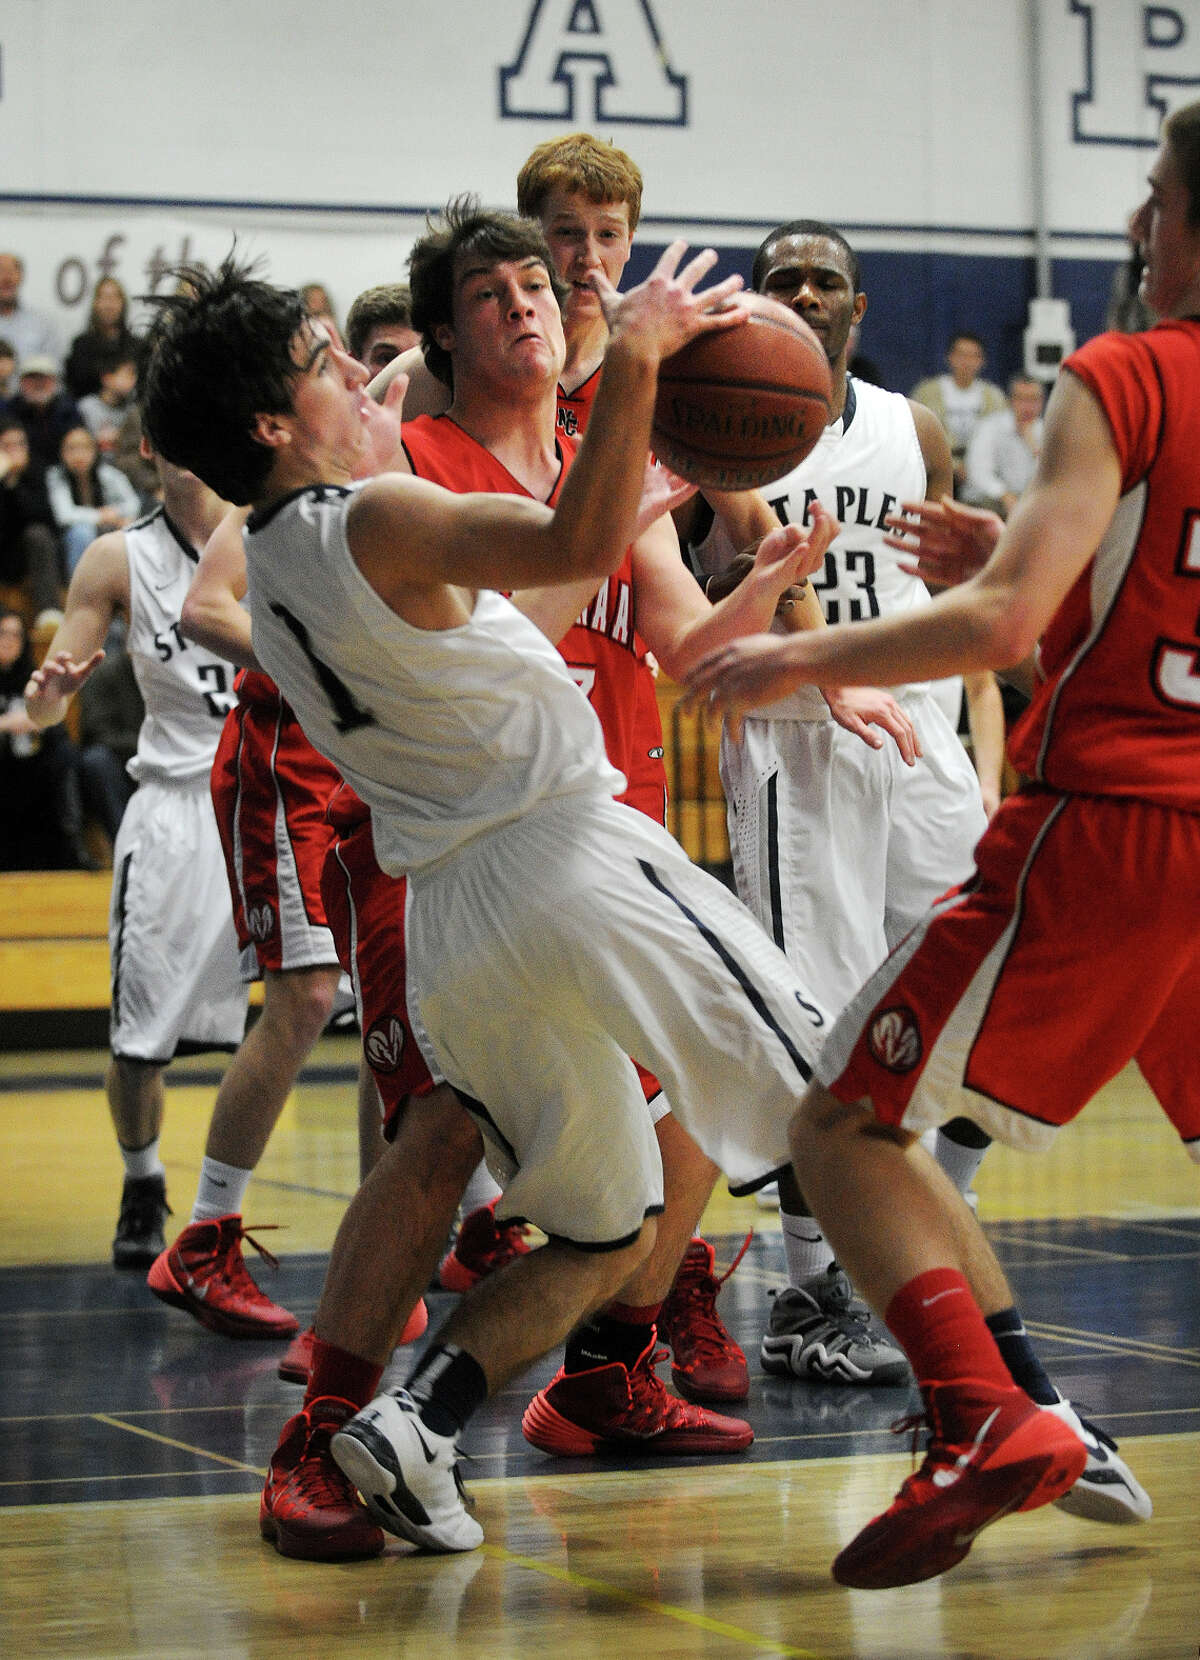 Staples' Jake Melnick, left, battles for a loose ball during the Wreckers' boys basketball win over New Canaan at Staples High School in Westport, Conn. on Monday, December 30, 2013.